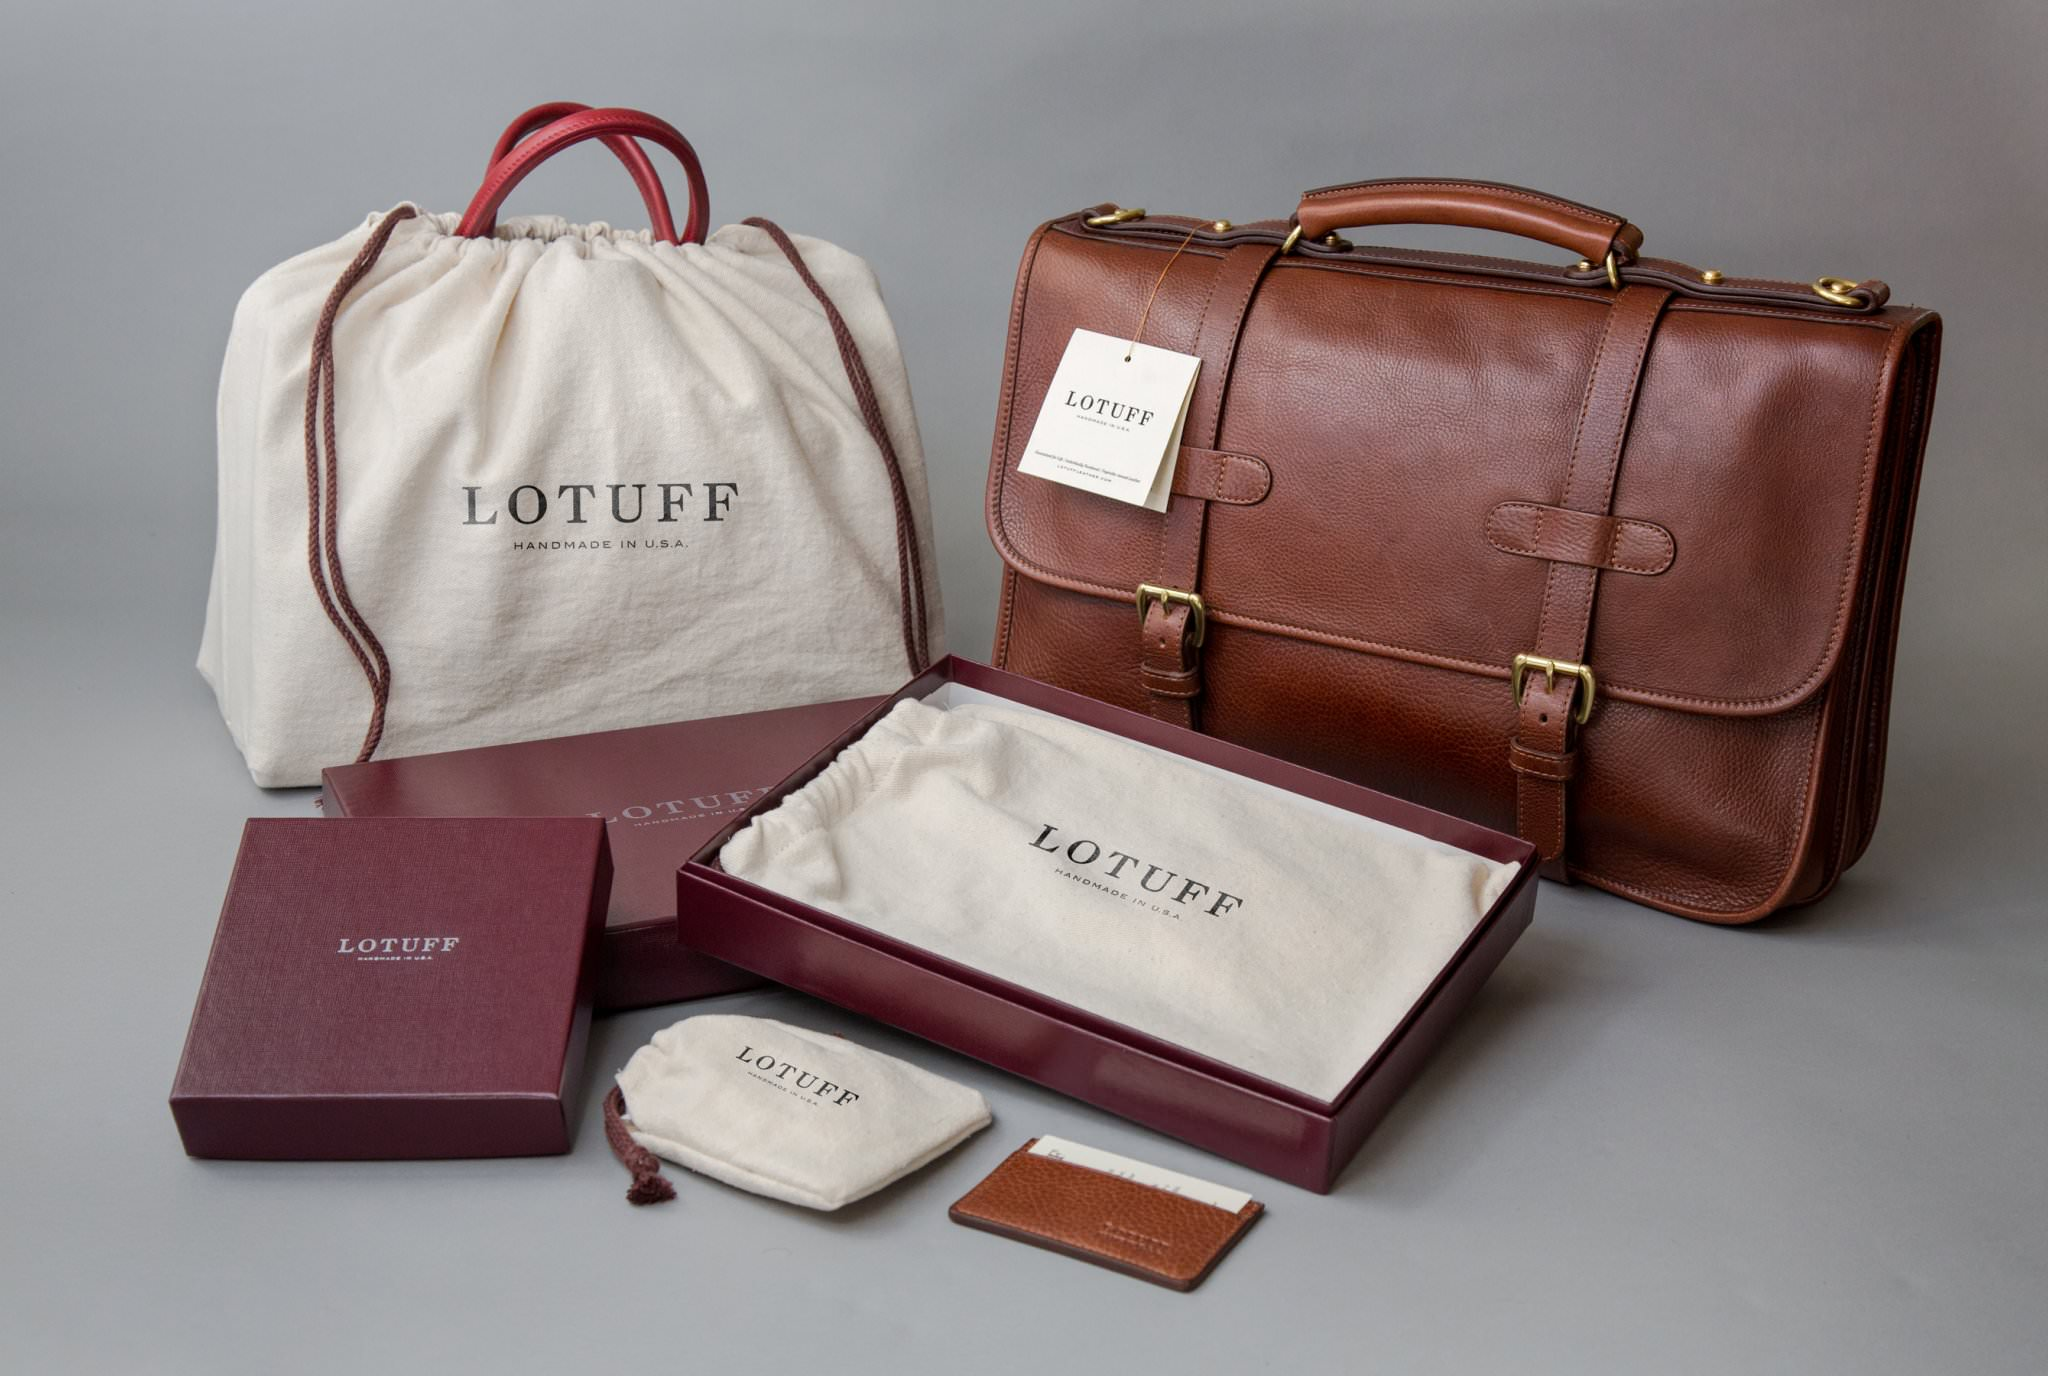 lotuff sac homme